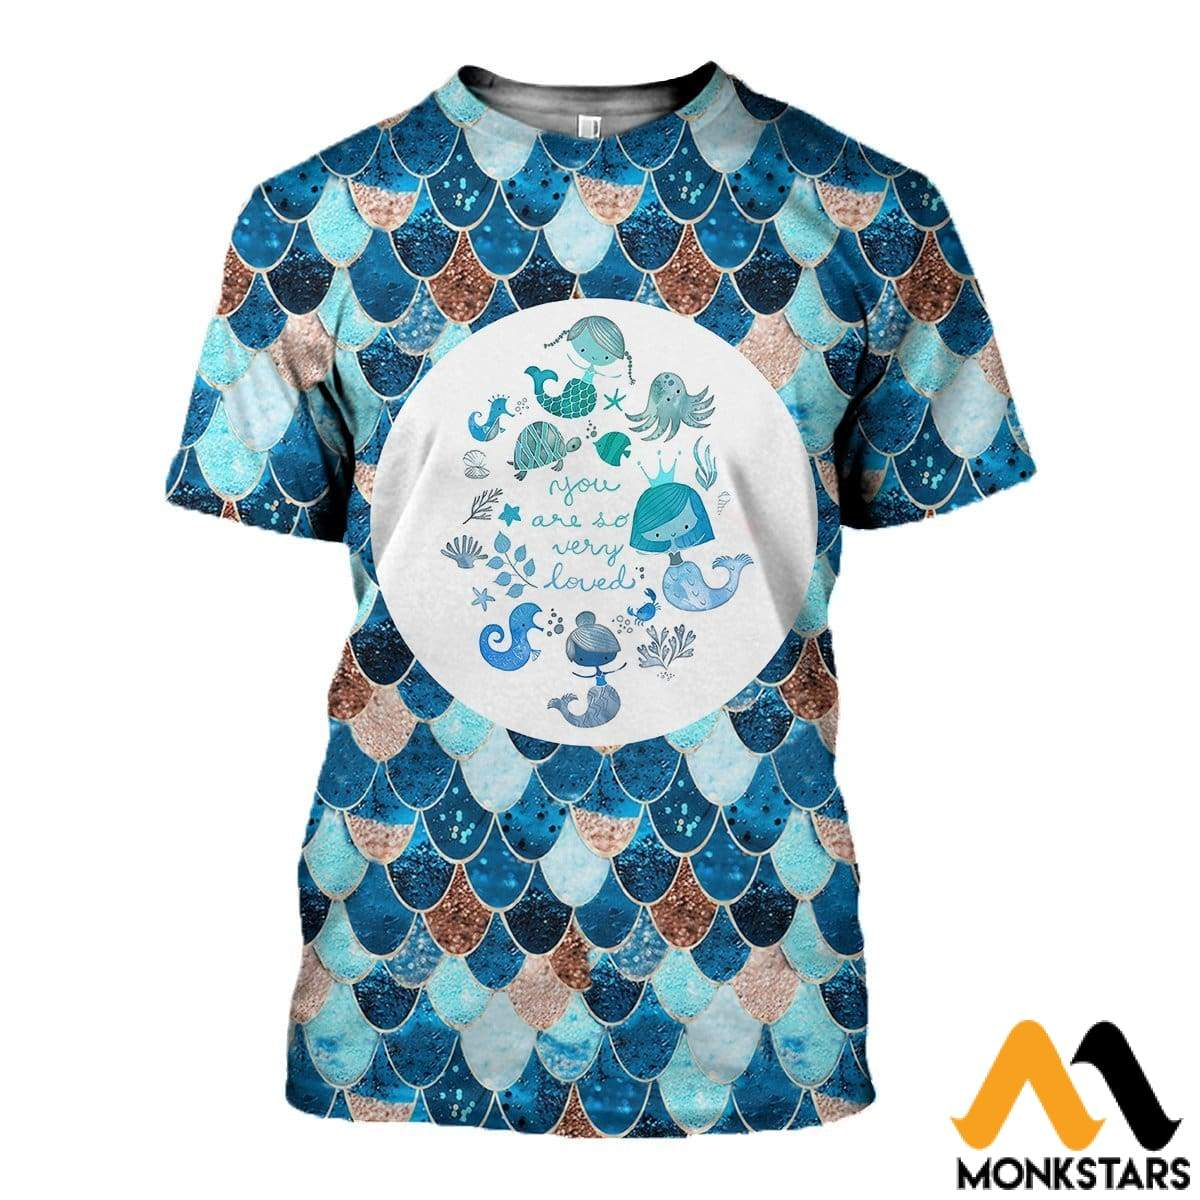 3D All Over Printed Lovely Mermaid Shirts And Shorts T-Shirt / Xs Clothes